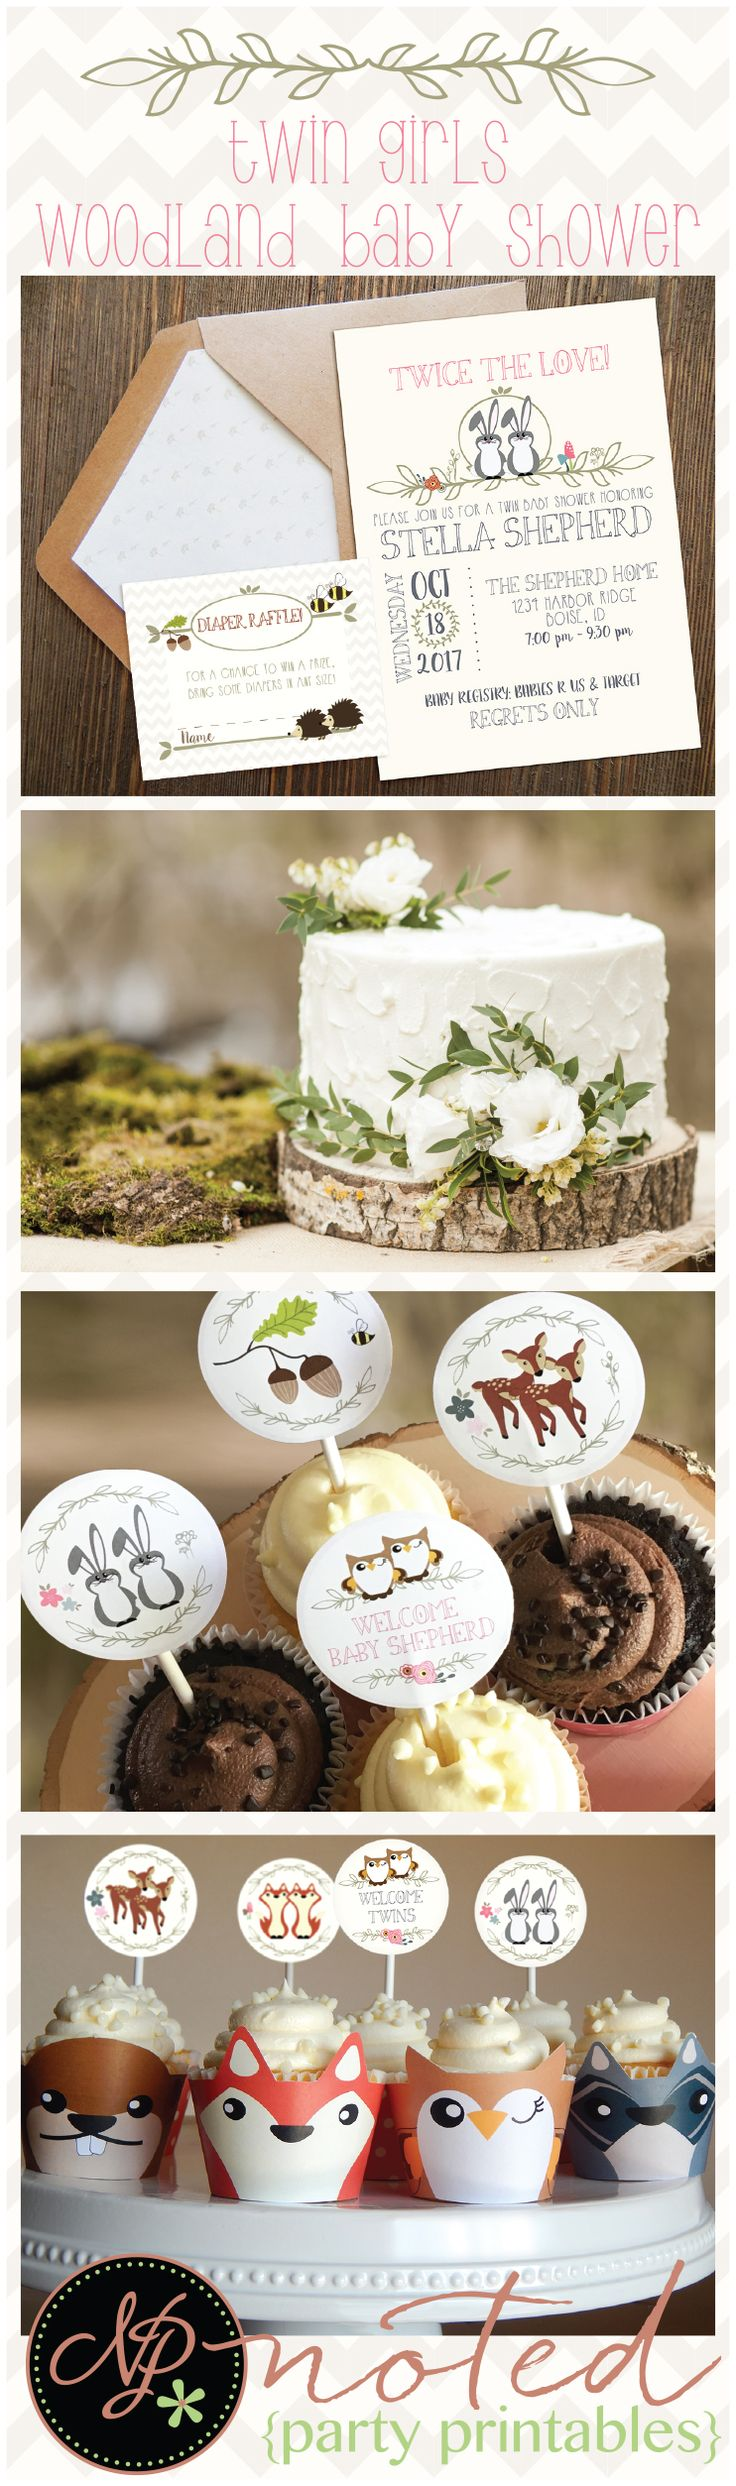 Our TWIN GIRLS Woodland Animals Baby Shower Decorations HERE!! These adorable woodland animal decorations include all your favorite baby woodland animals designed for twin girls! This Woodland TWIN GIRLS theme baby shower is easy to print at home or at your favorite local print shop + assemble. Over 20 pages of adorable woodland forest animals.